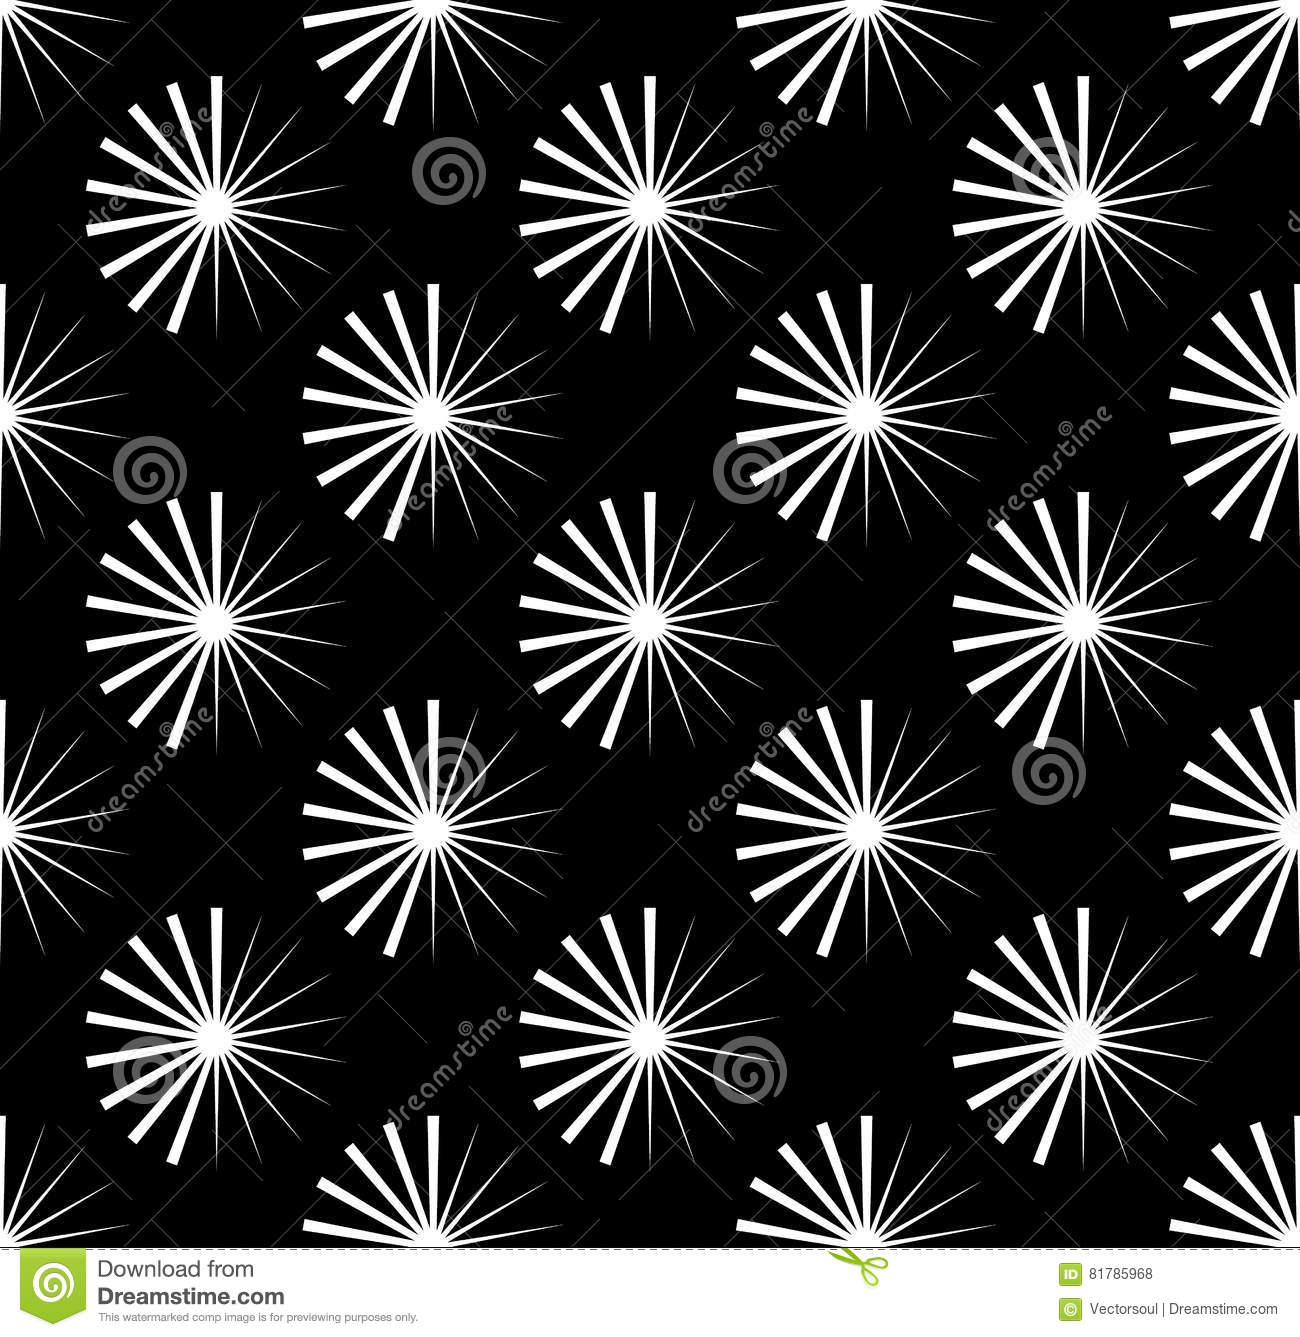 Repetitive pattern with radial-radiating lines. Abstract geometr